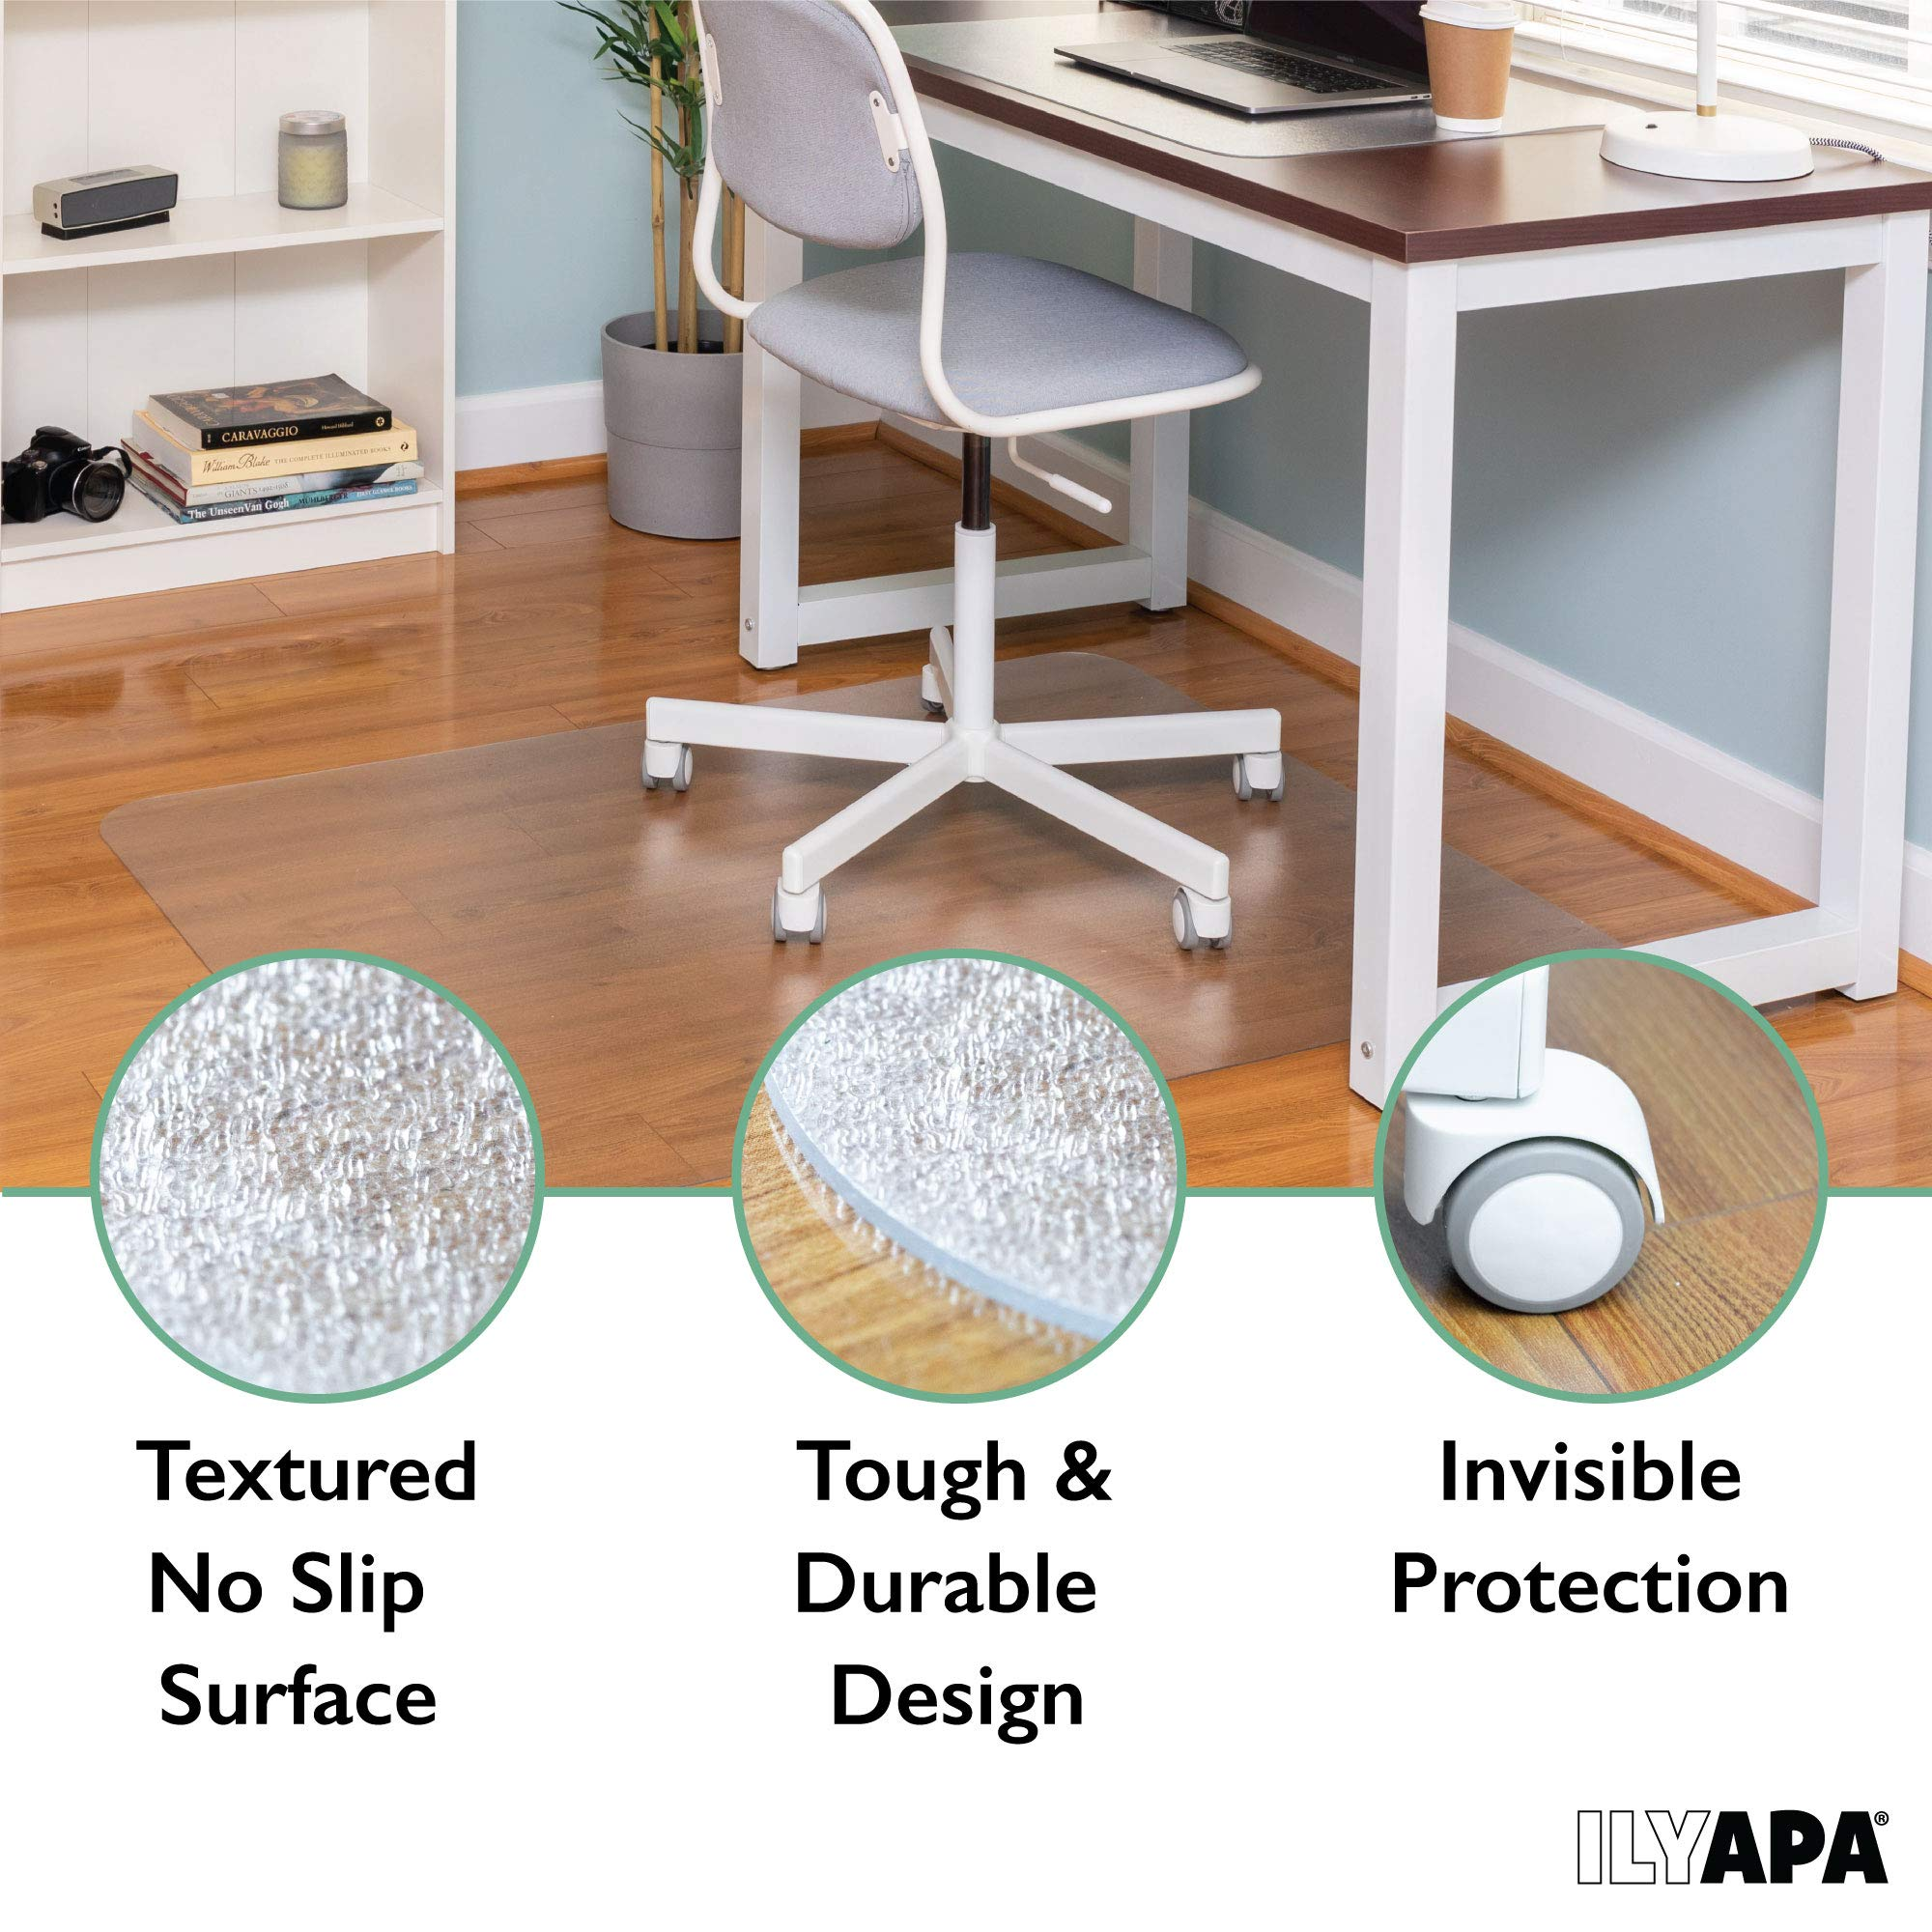 Office Chair Mat for Hard Floors 59 x 47 - Clear Hardwood Mat for Desk Chairs by Ilyapa (Image #3)